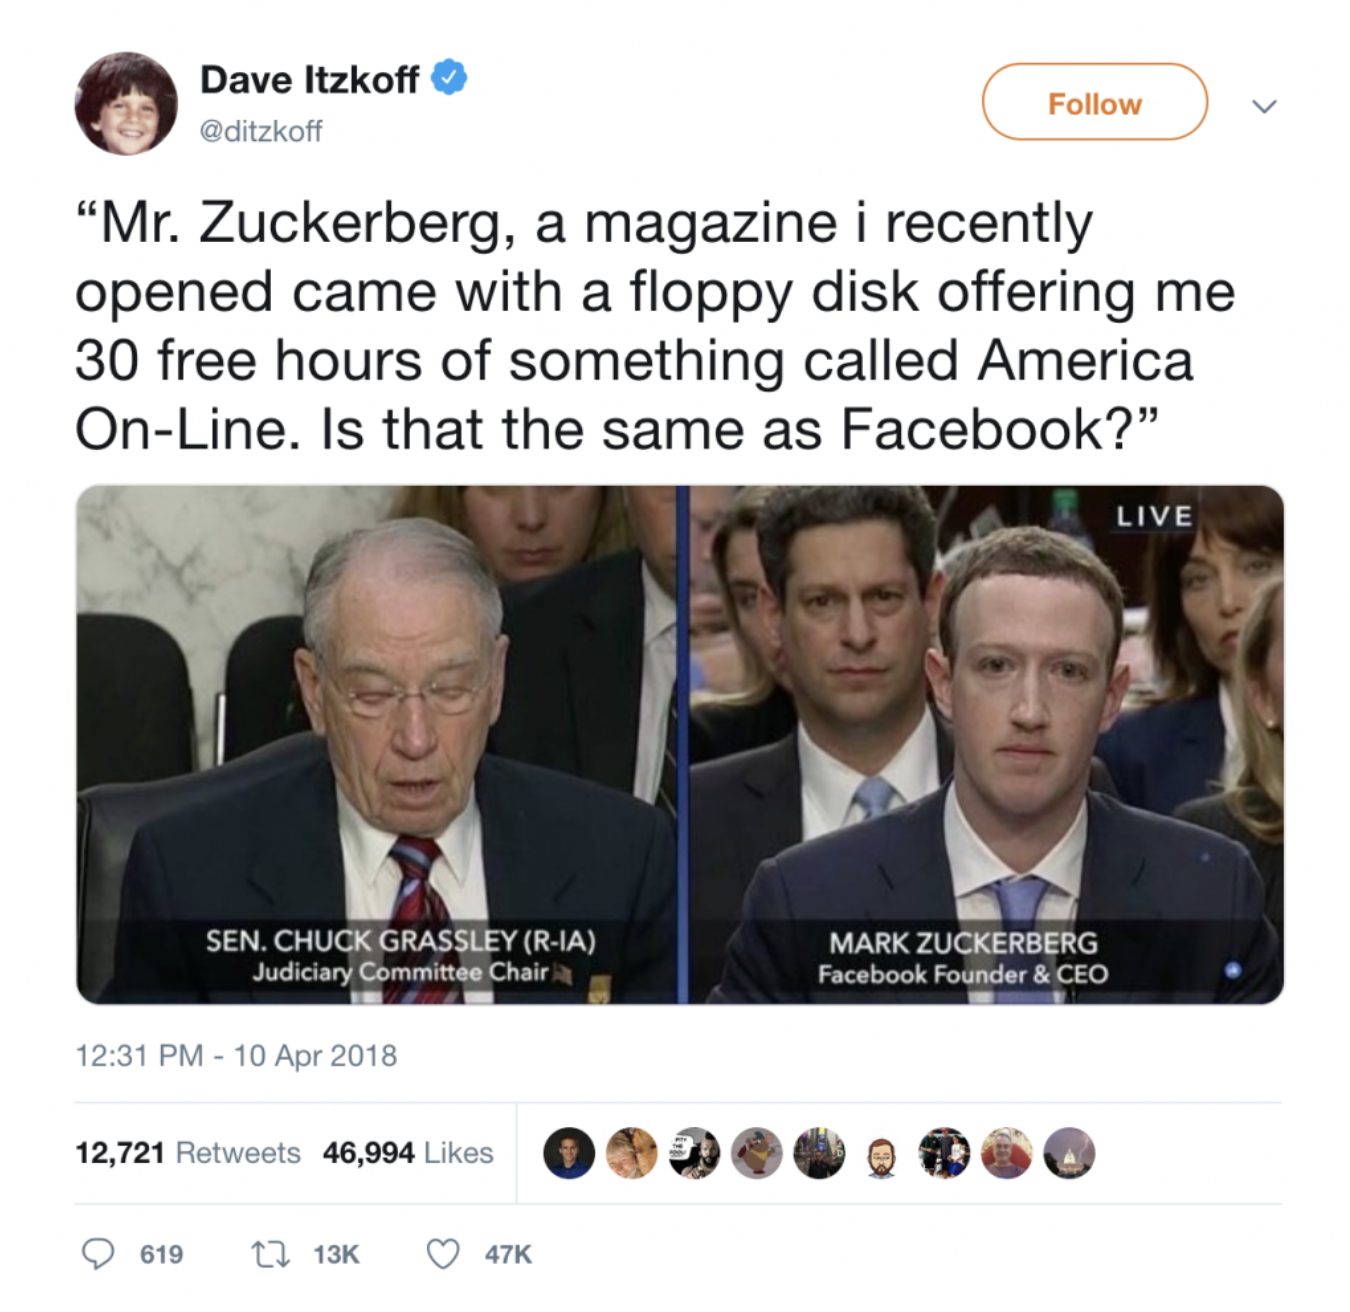 Mark Zuckerberg testifying in front of Congress AOL meme